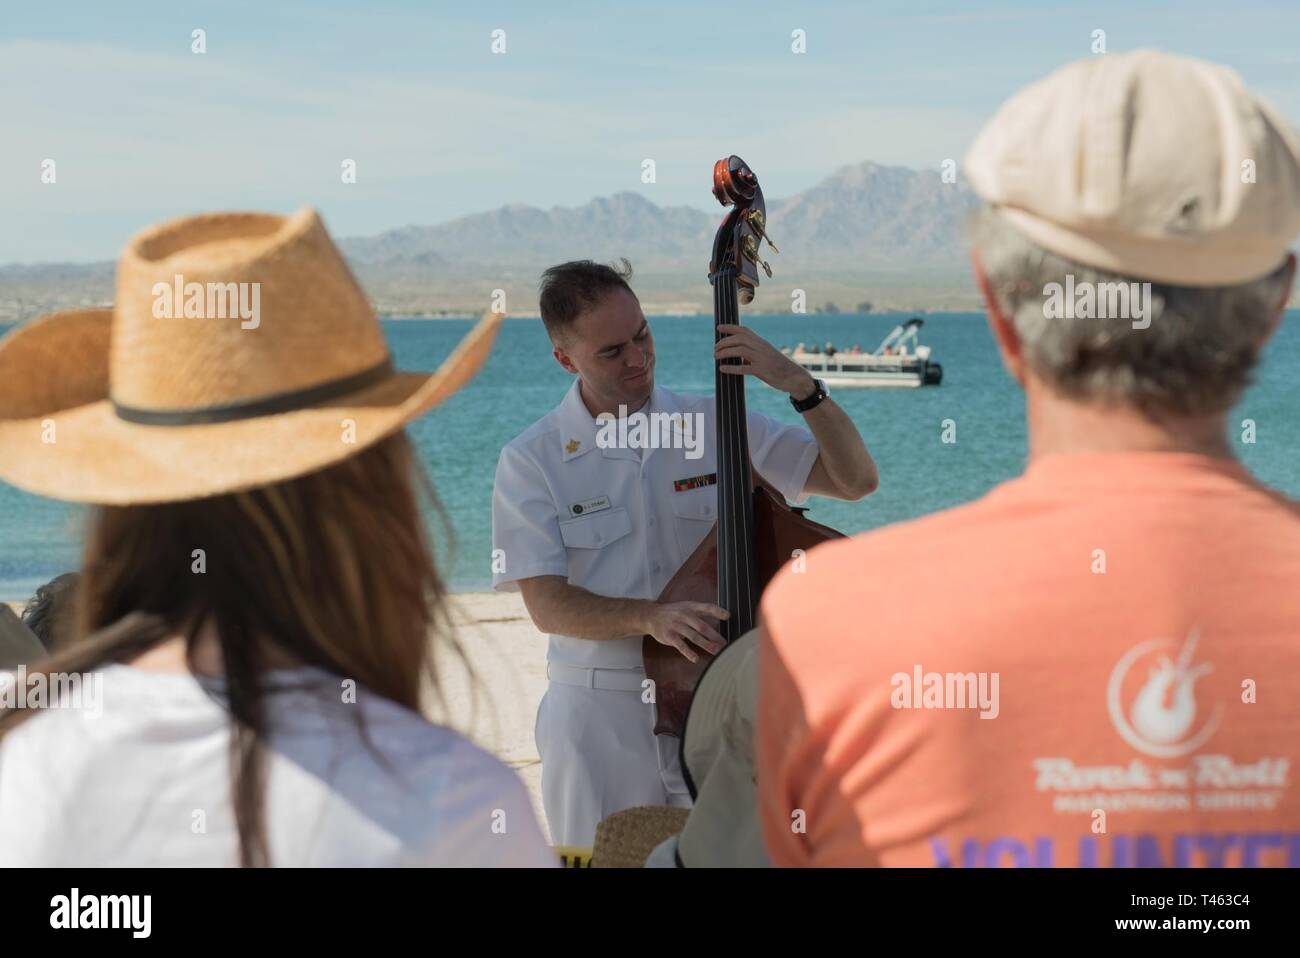 "LAKE HAVASU CITY,  Arizona (March 1, 2019)  Musician 1st Class Danny Stuart conducts an upright bass workshop at the Lake Havasu ""Bluegrass on the Beach"" bluegrass festival. The Navy Band performs all across the country providing an opportunity for communities to connect with Sailors and going where ships can't go to forge strong and capable partnerships for a stronger America. Stock Photo"